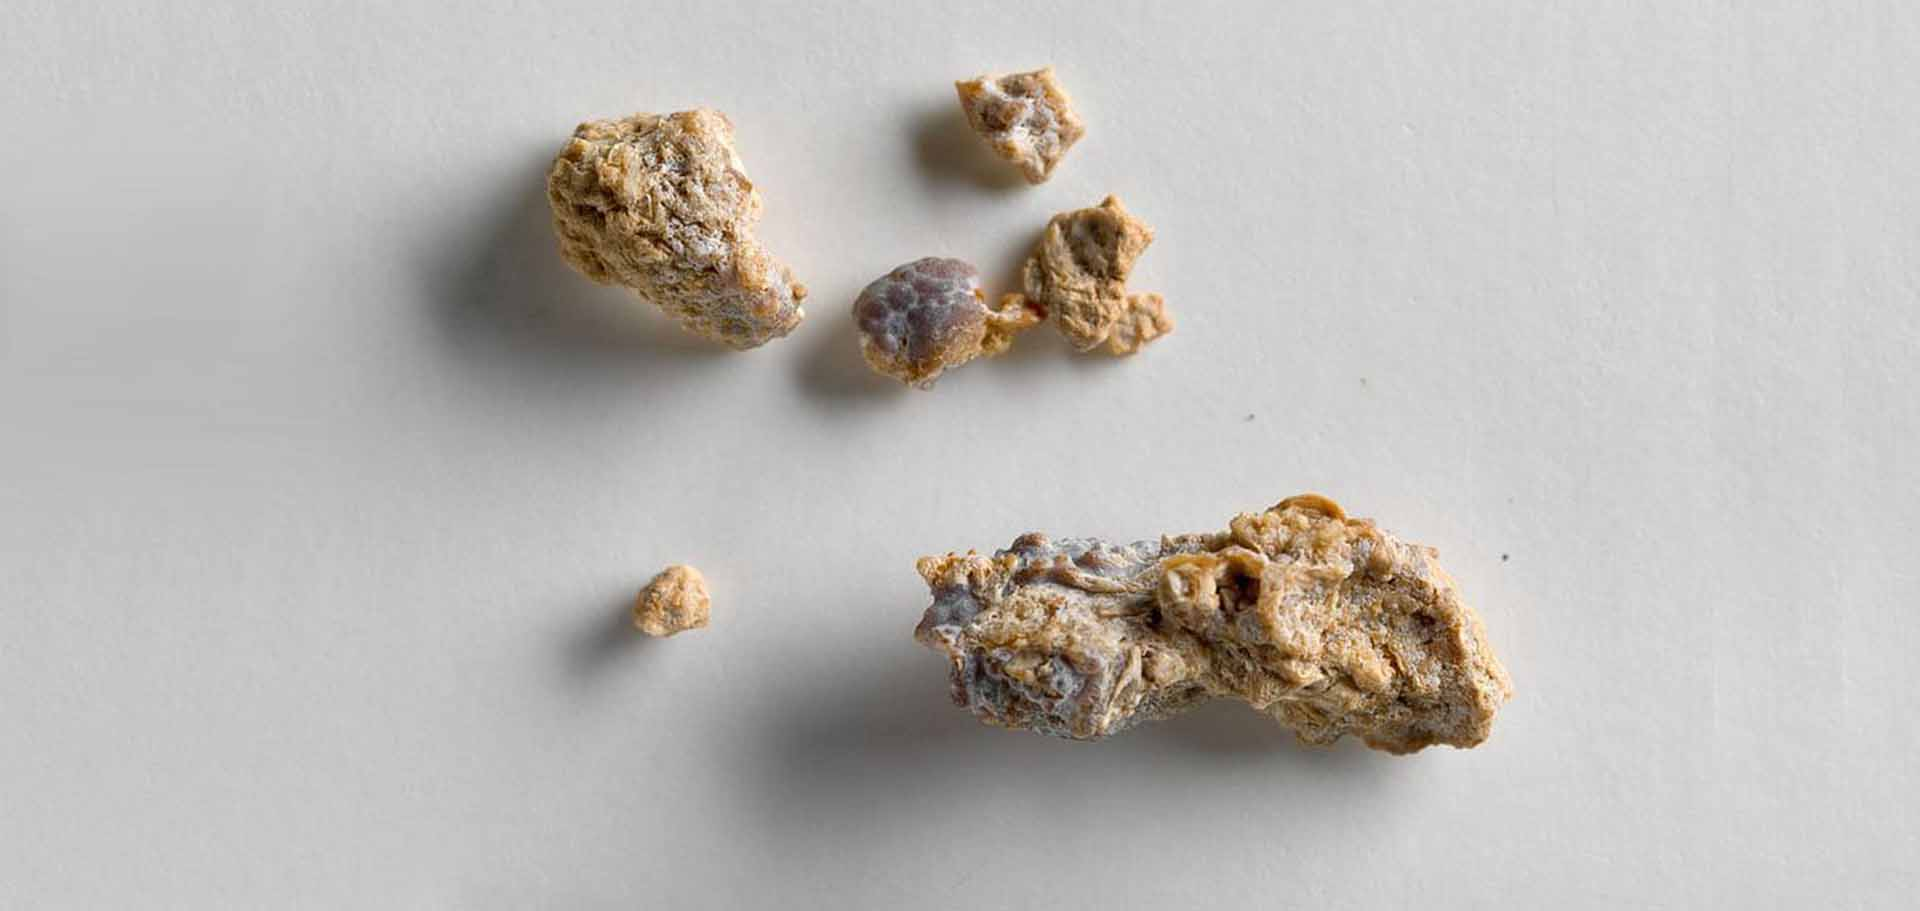 Find Out How To Prevent Kidney Stones